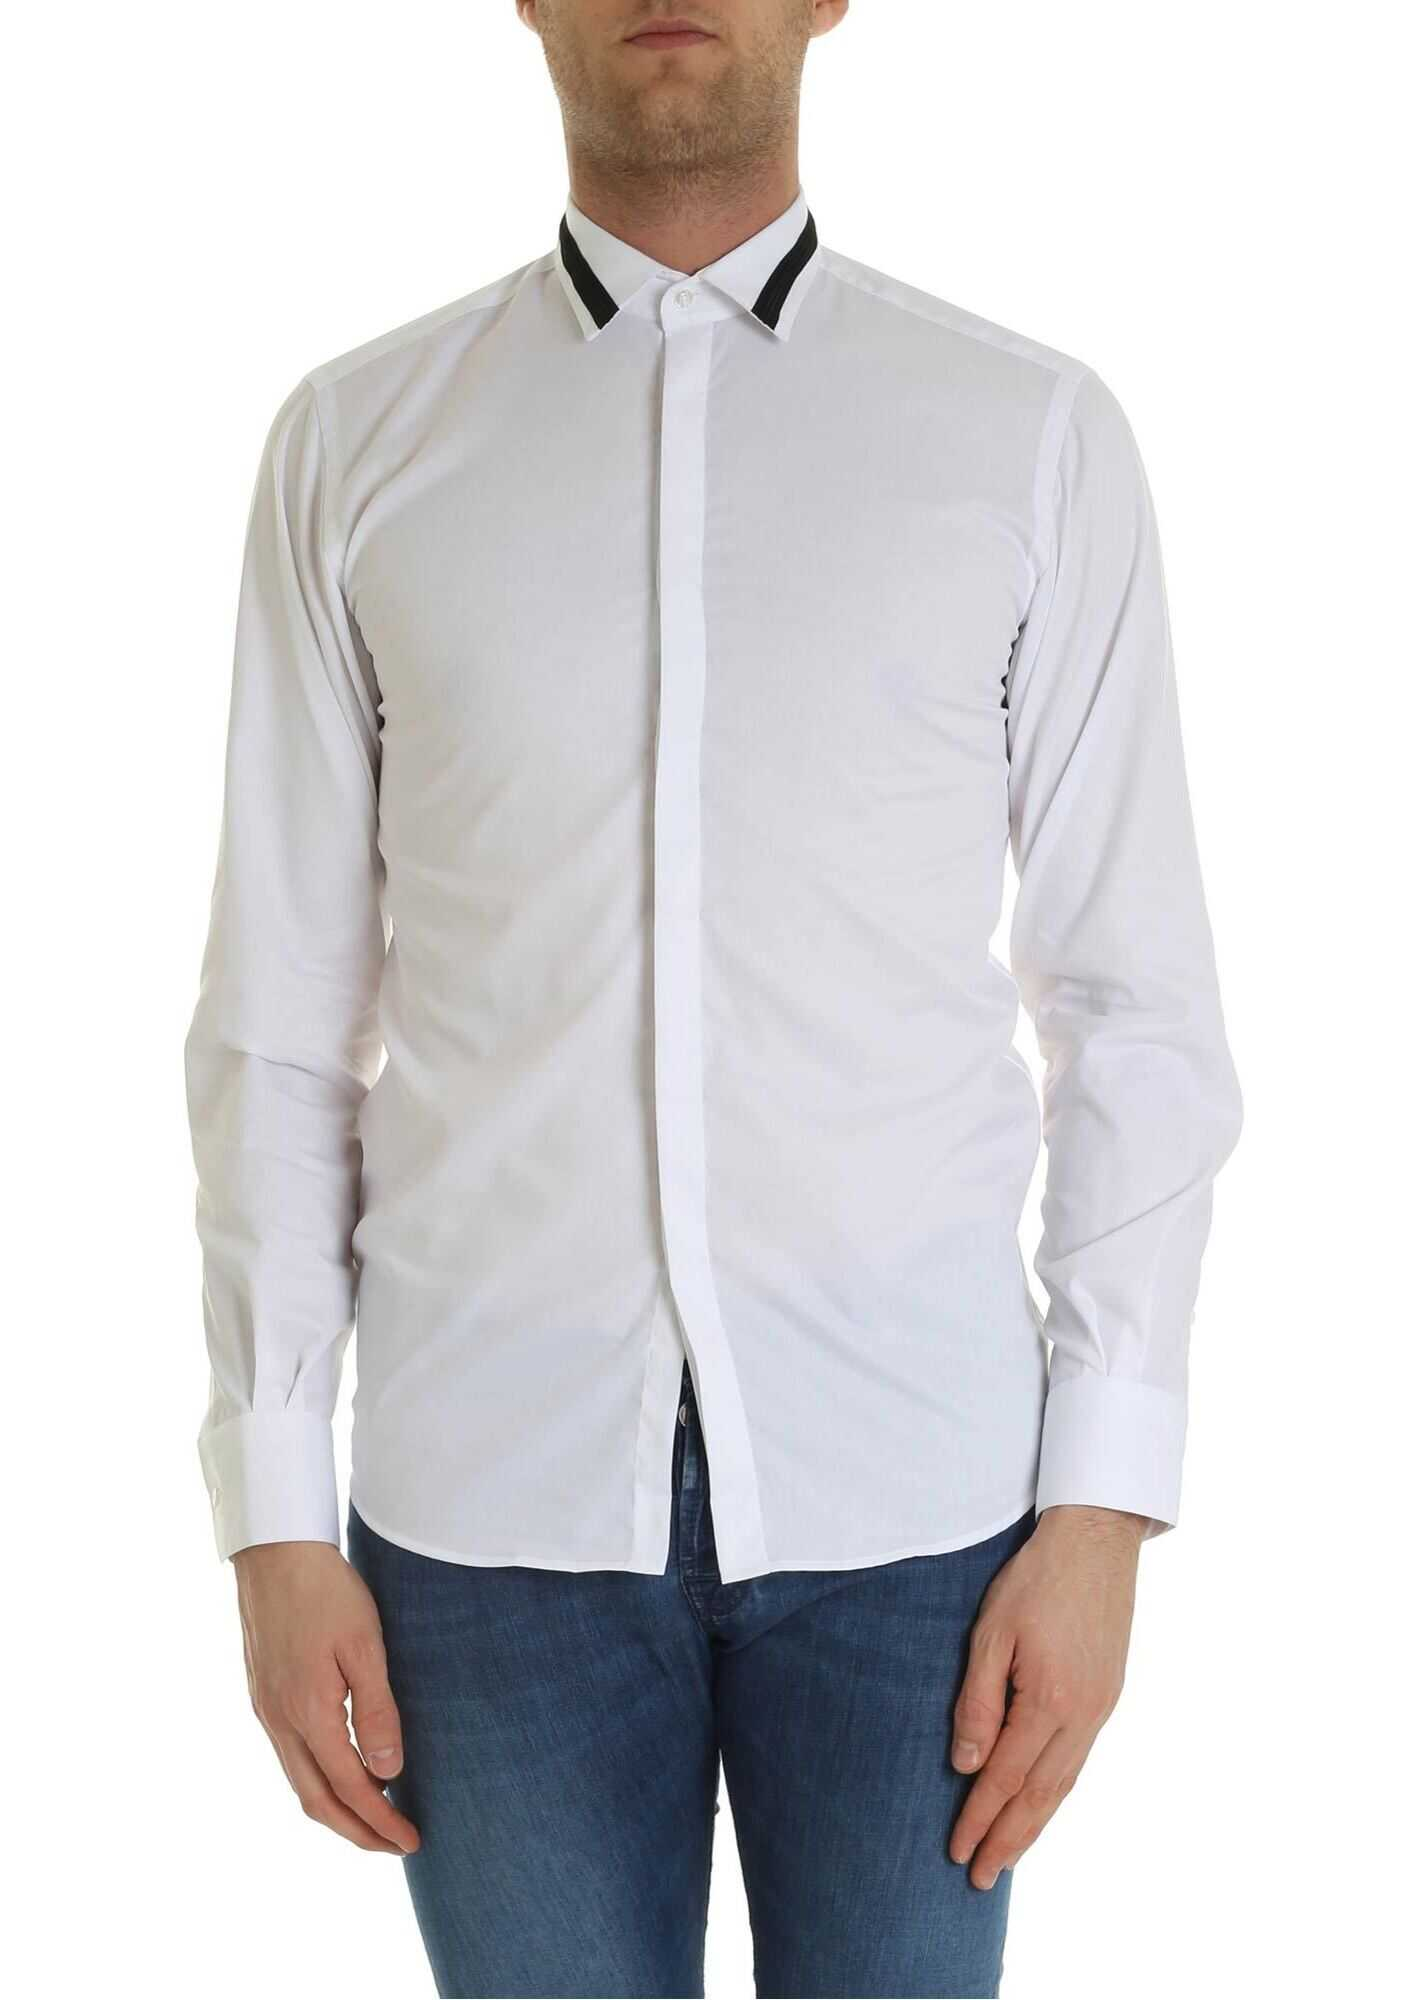 White Shirt With Black Insert thumbnail